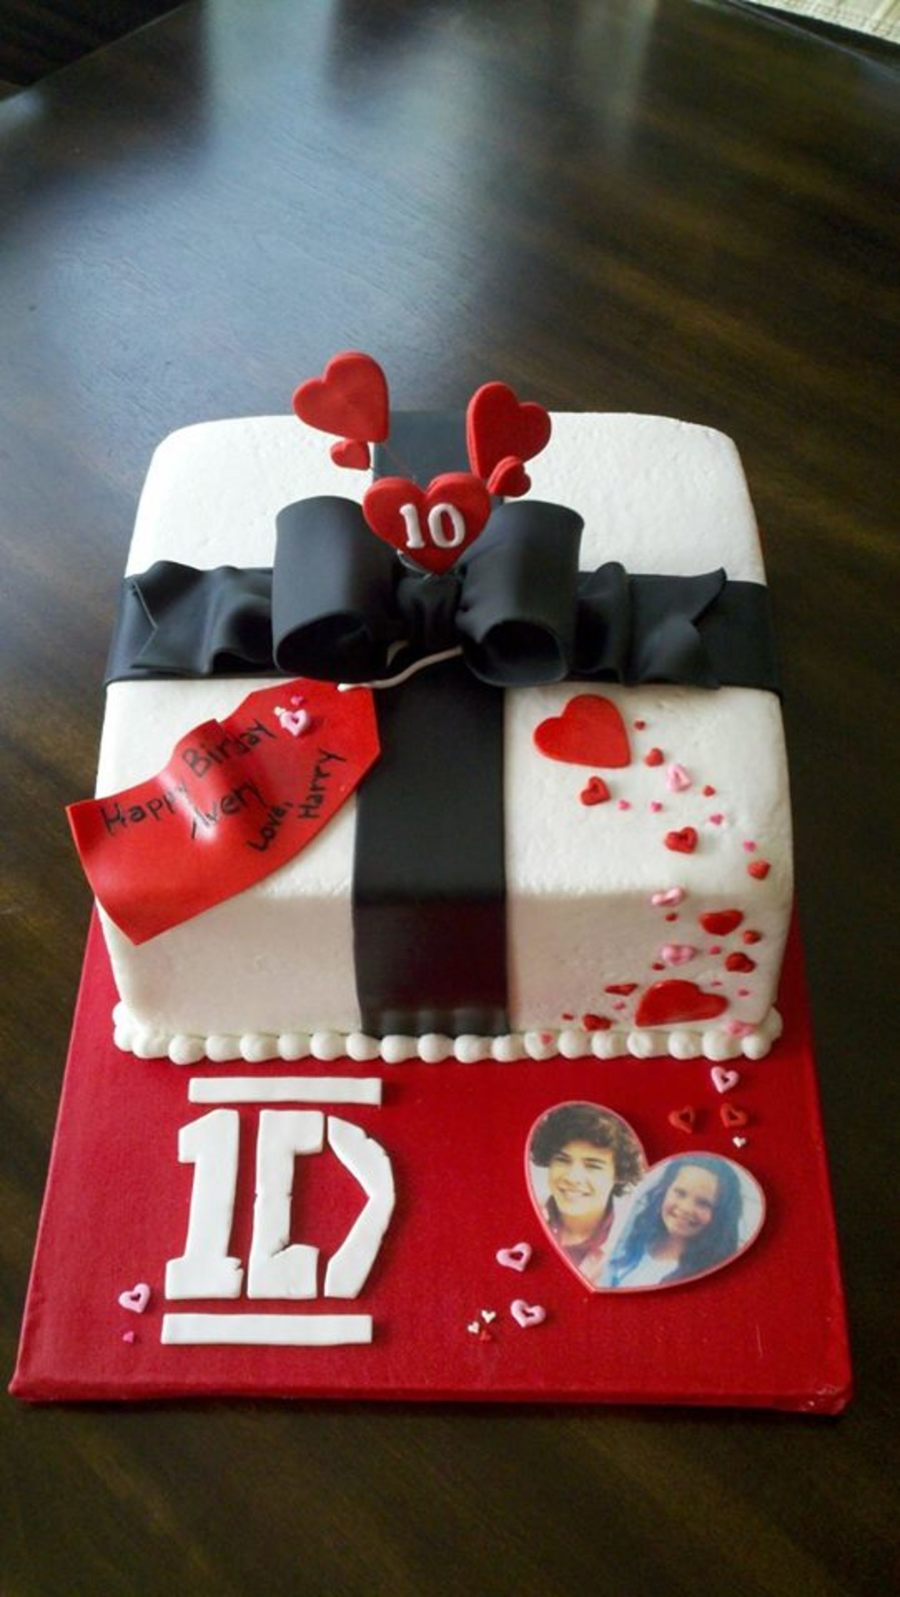 Happy Birthday Avery With Love Harry Cakecentral